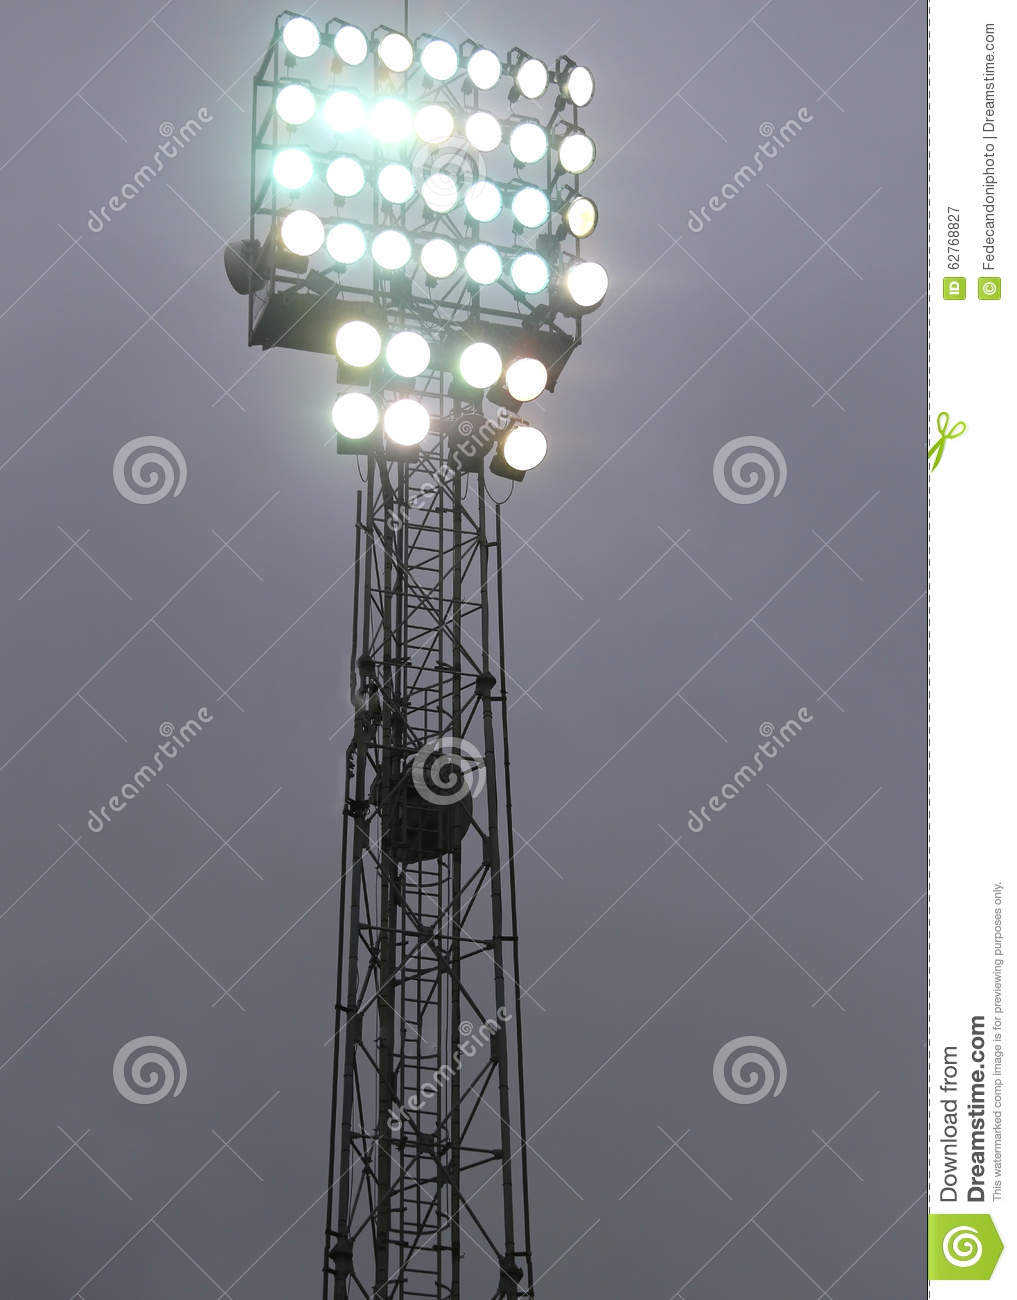 lights on at night during the show in the stadium stock photo